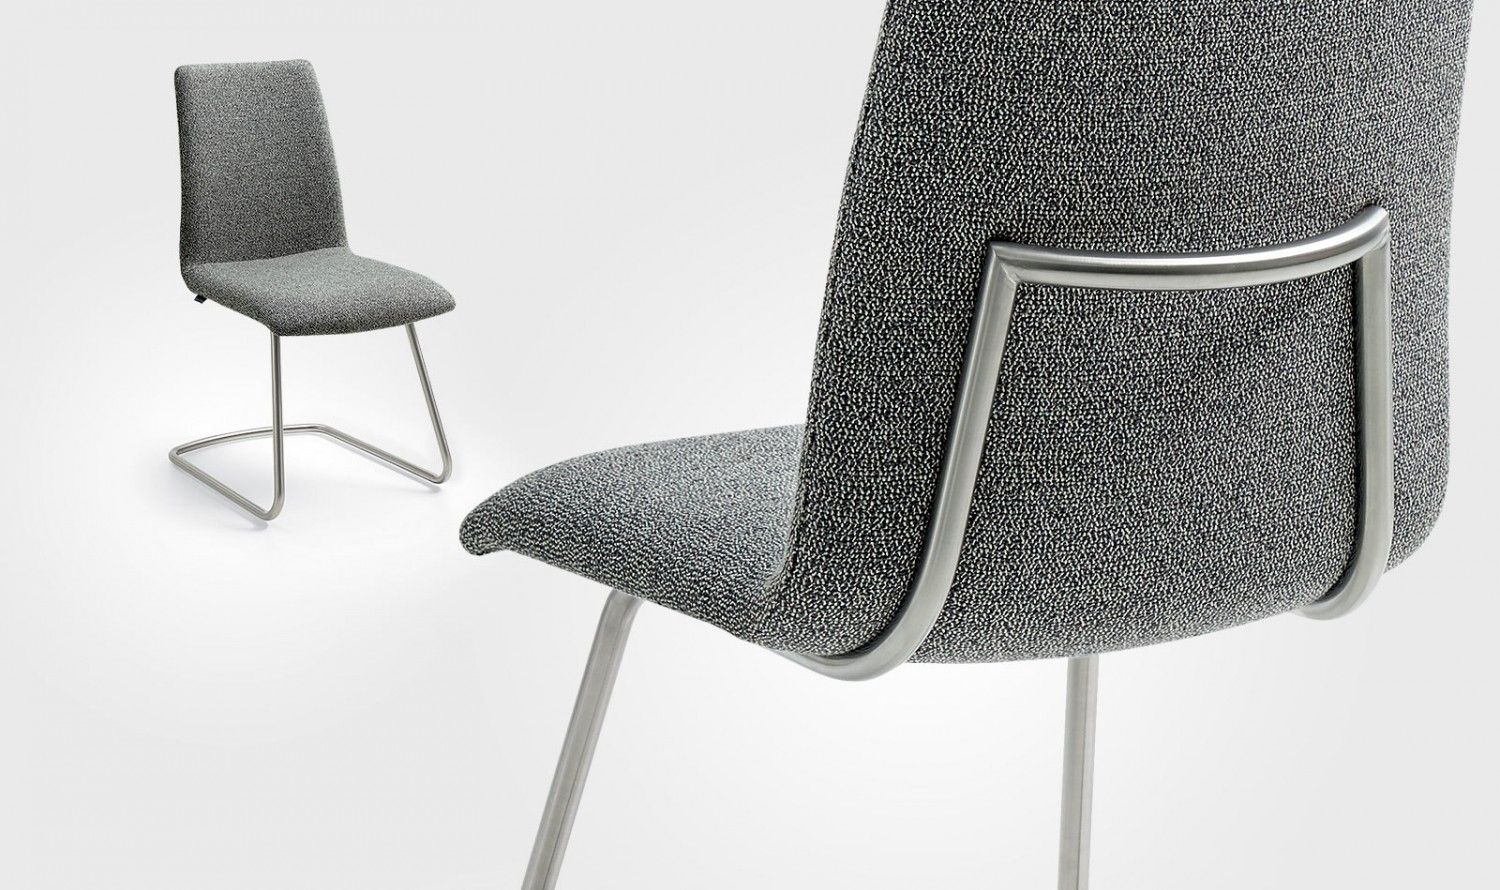 Venjakob Zoe Dining Chair Dining Chairs Creative Furniture Chair